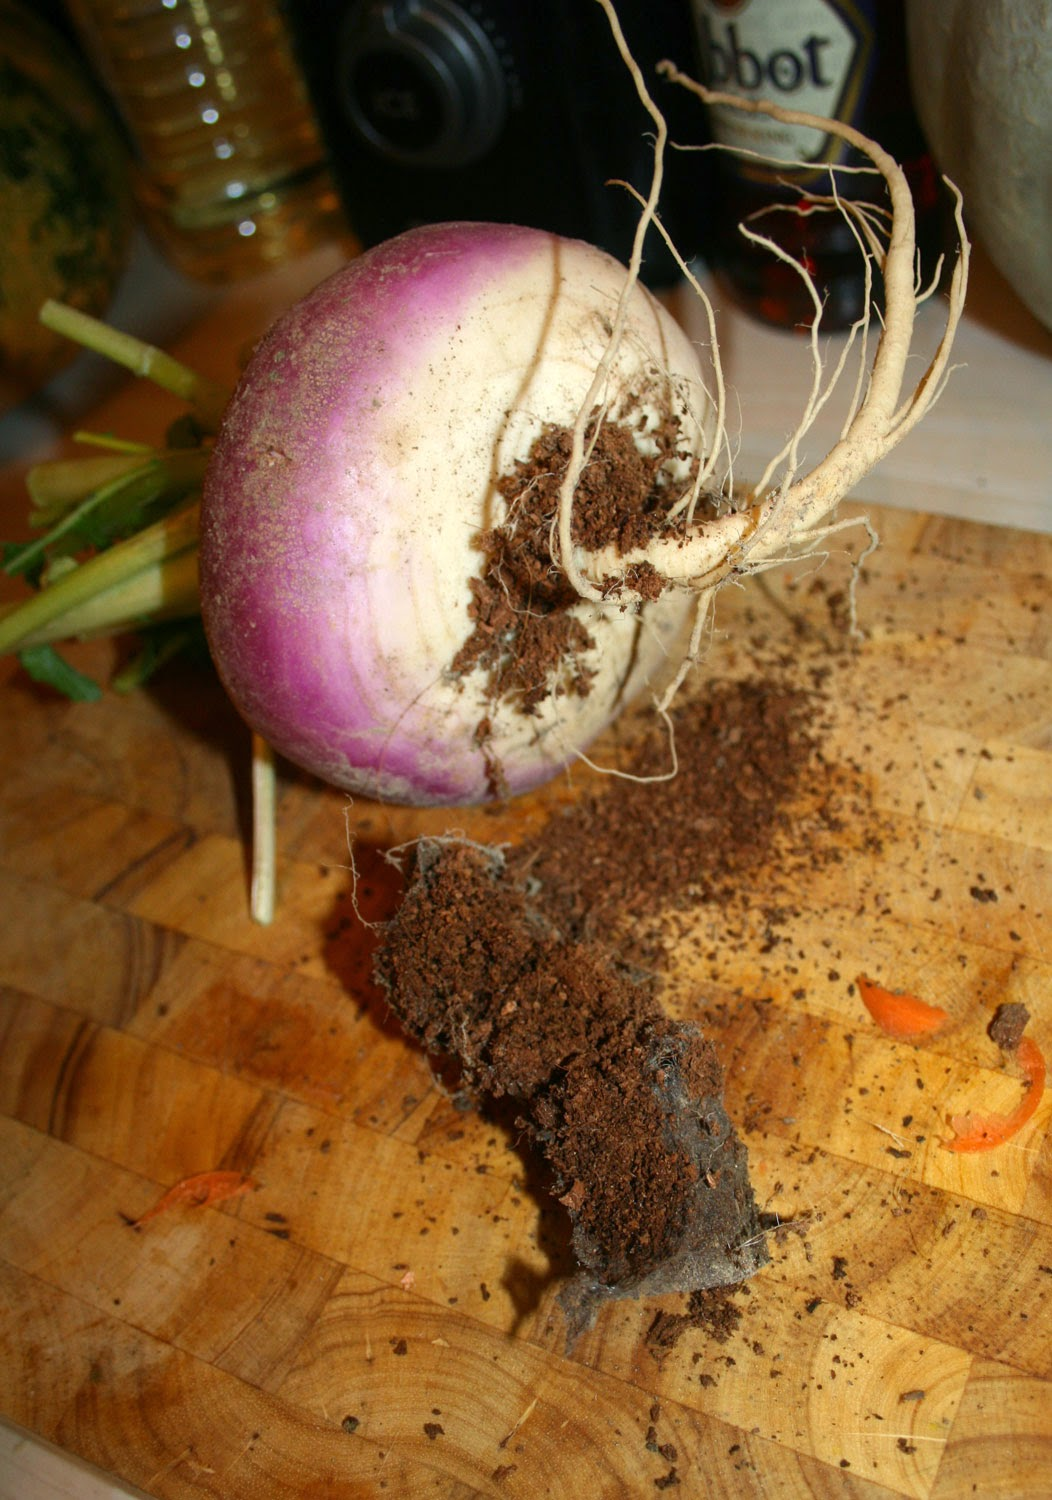 Turnip ready for chopping